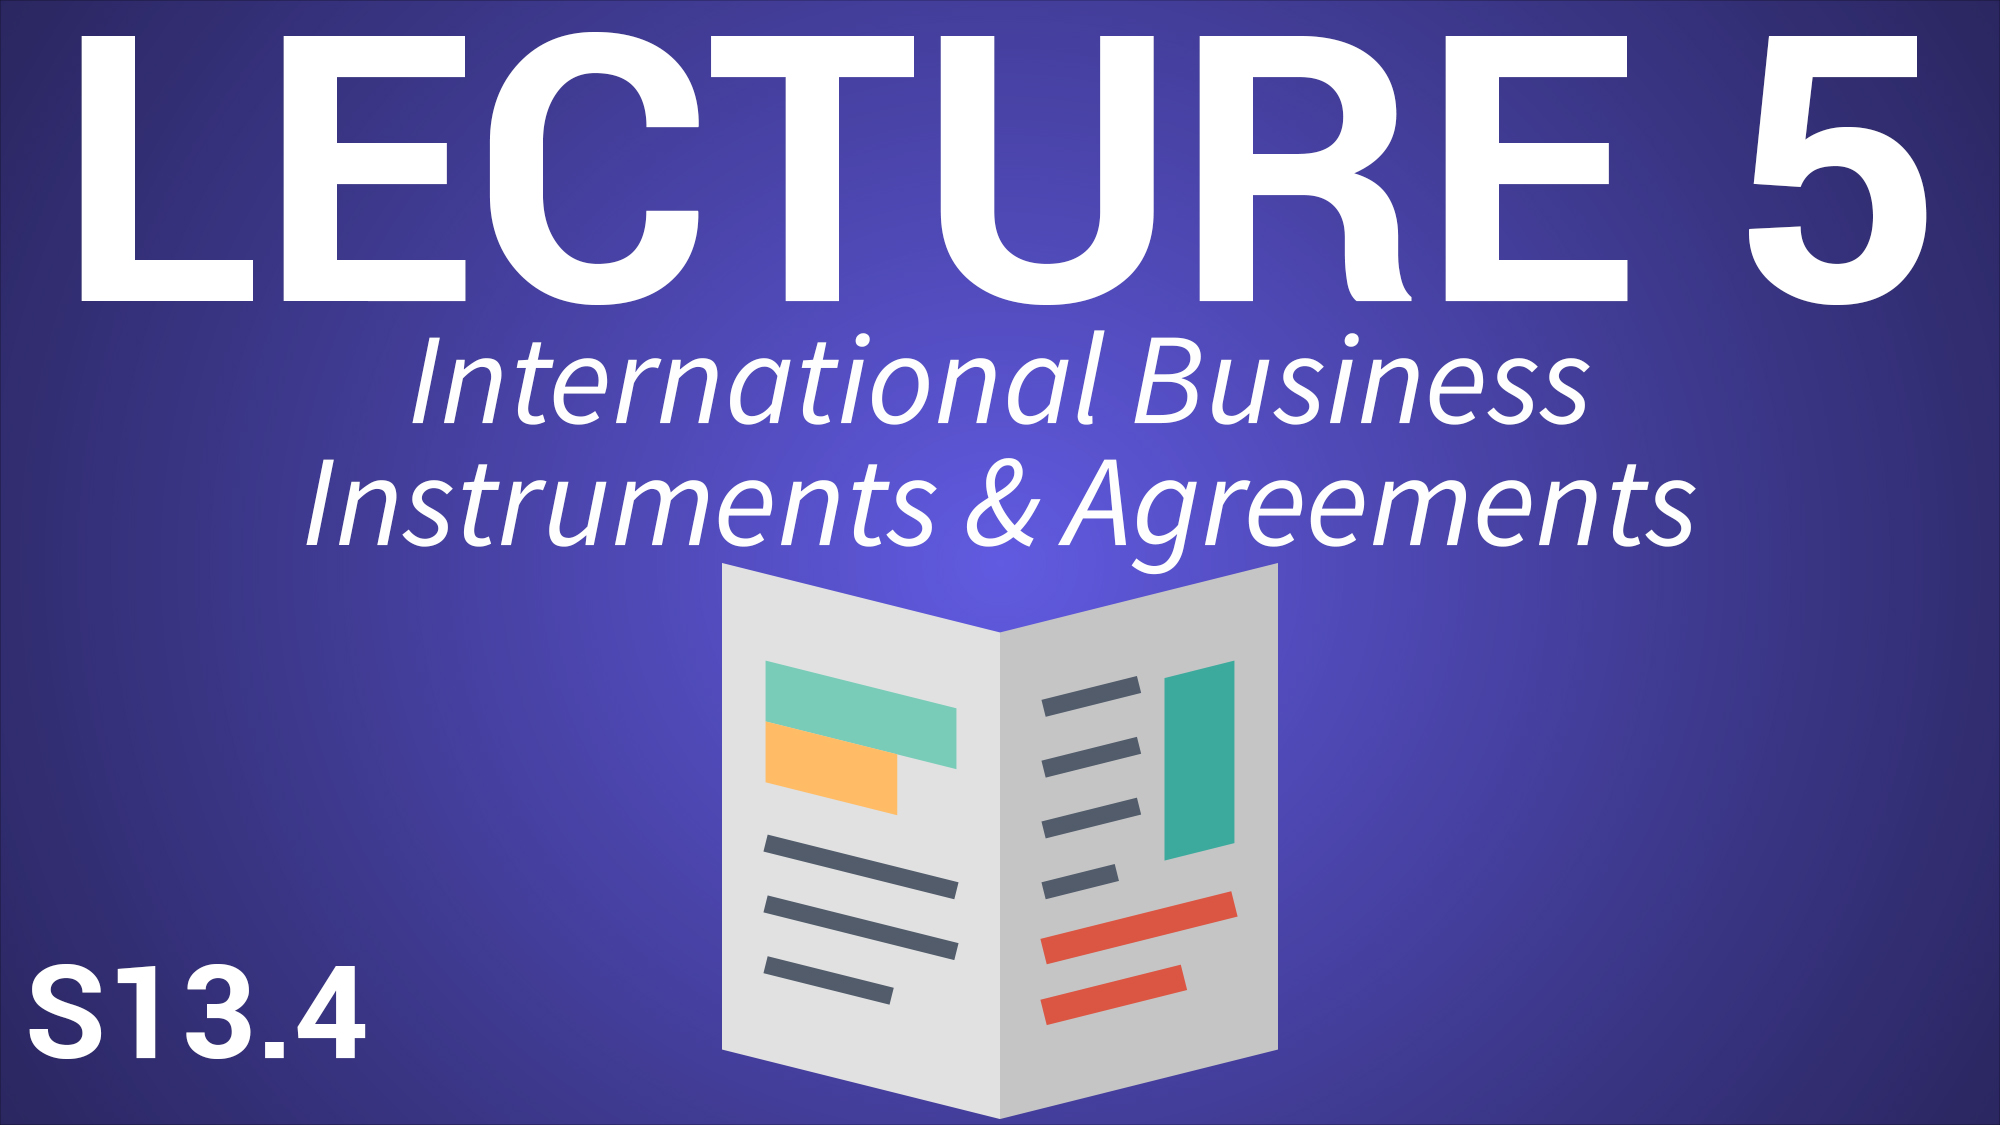 International Business for Managers - Lecture 5 - International Business Instruments and Agreements